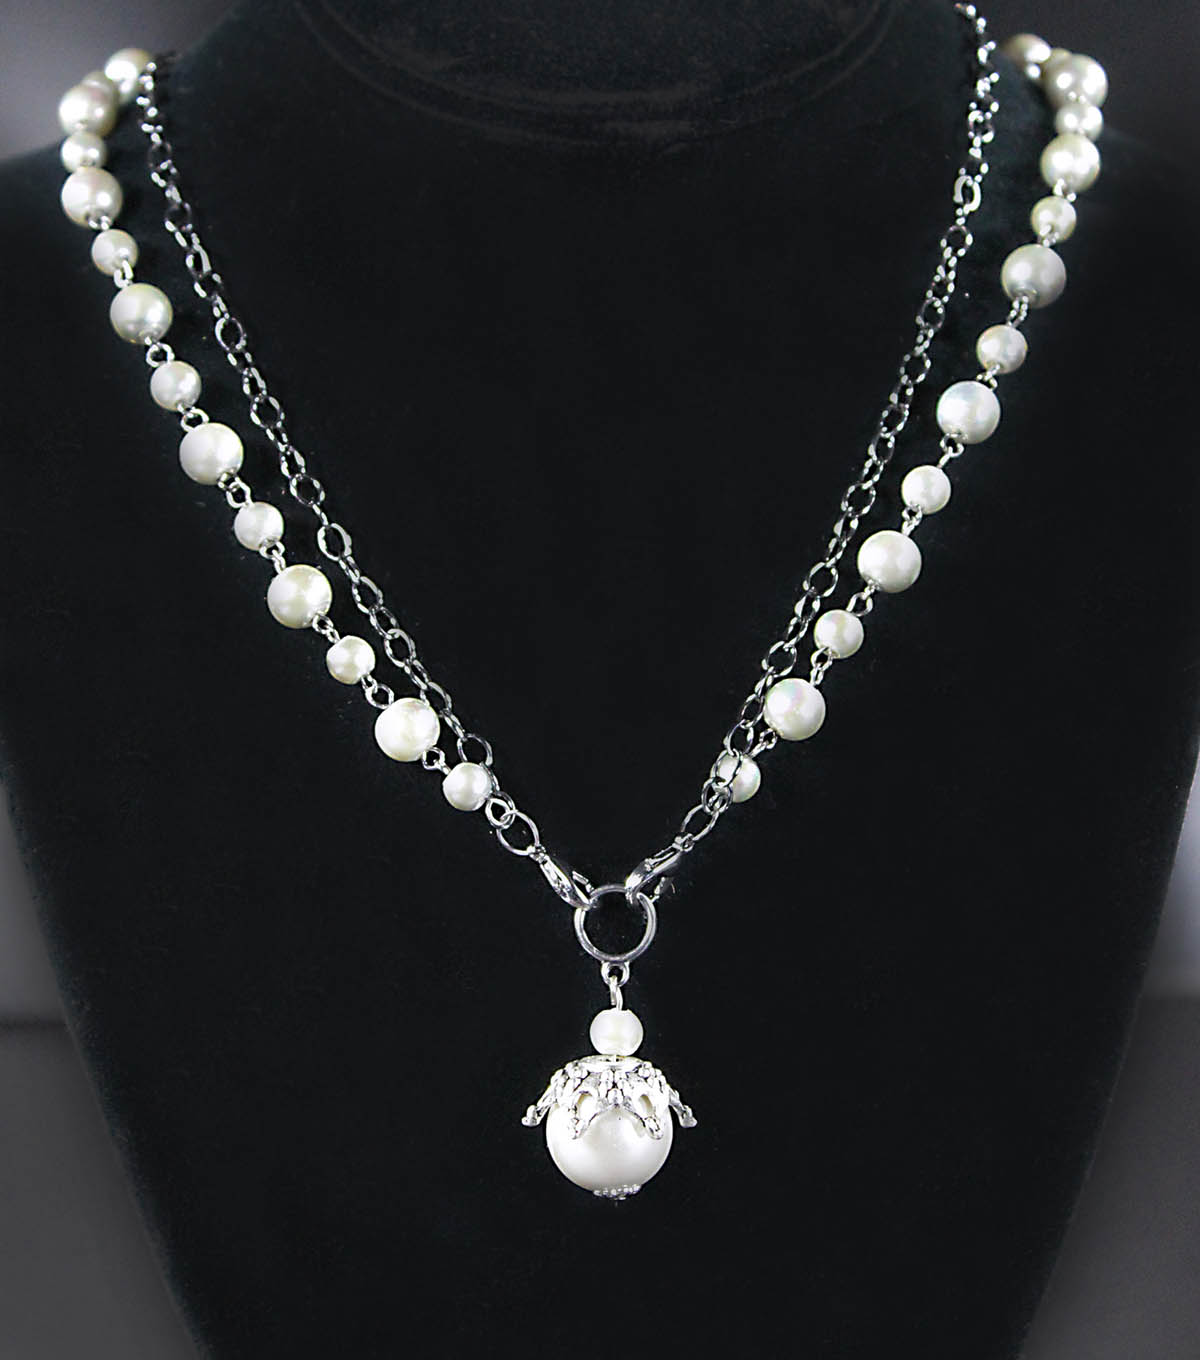 Pearl and Gun Metal Necklace